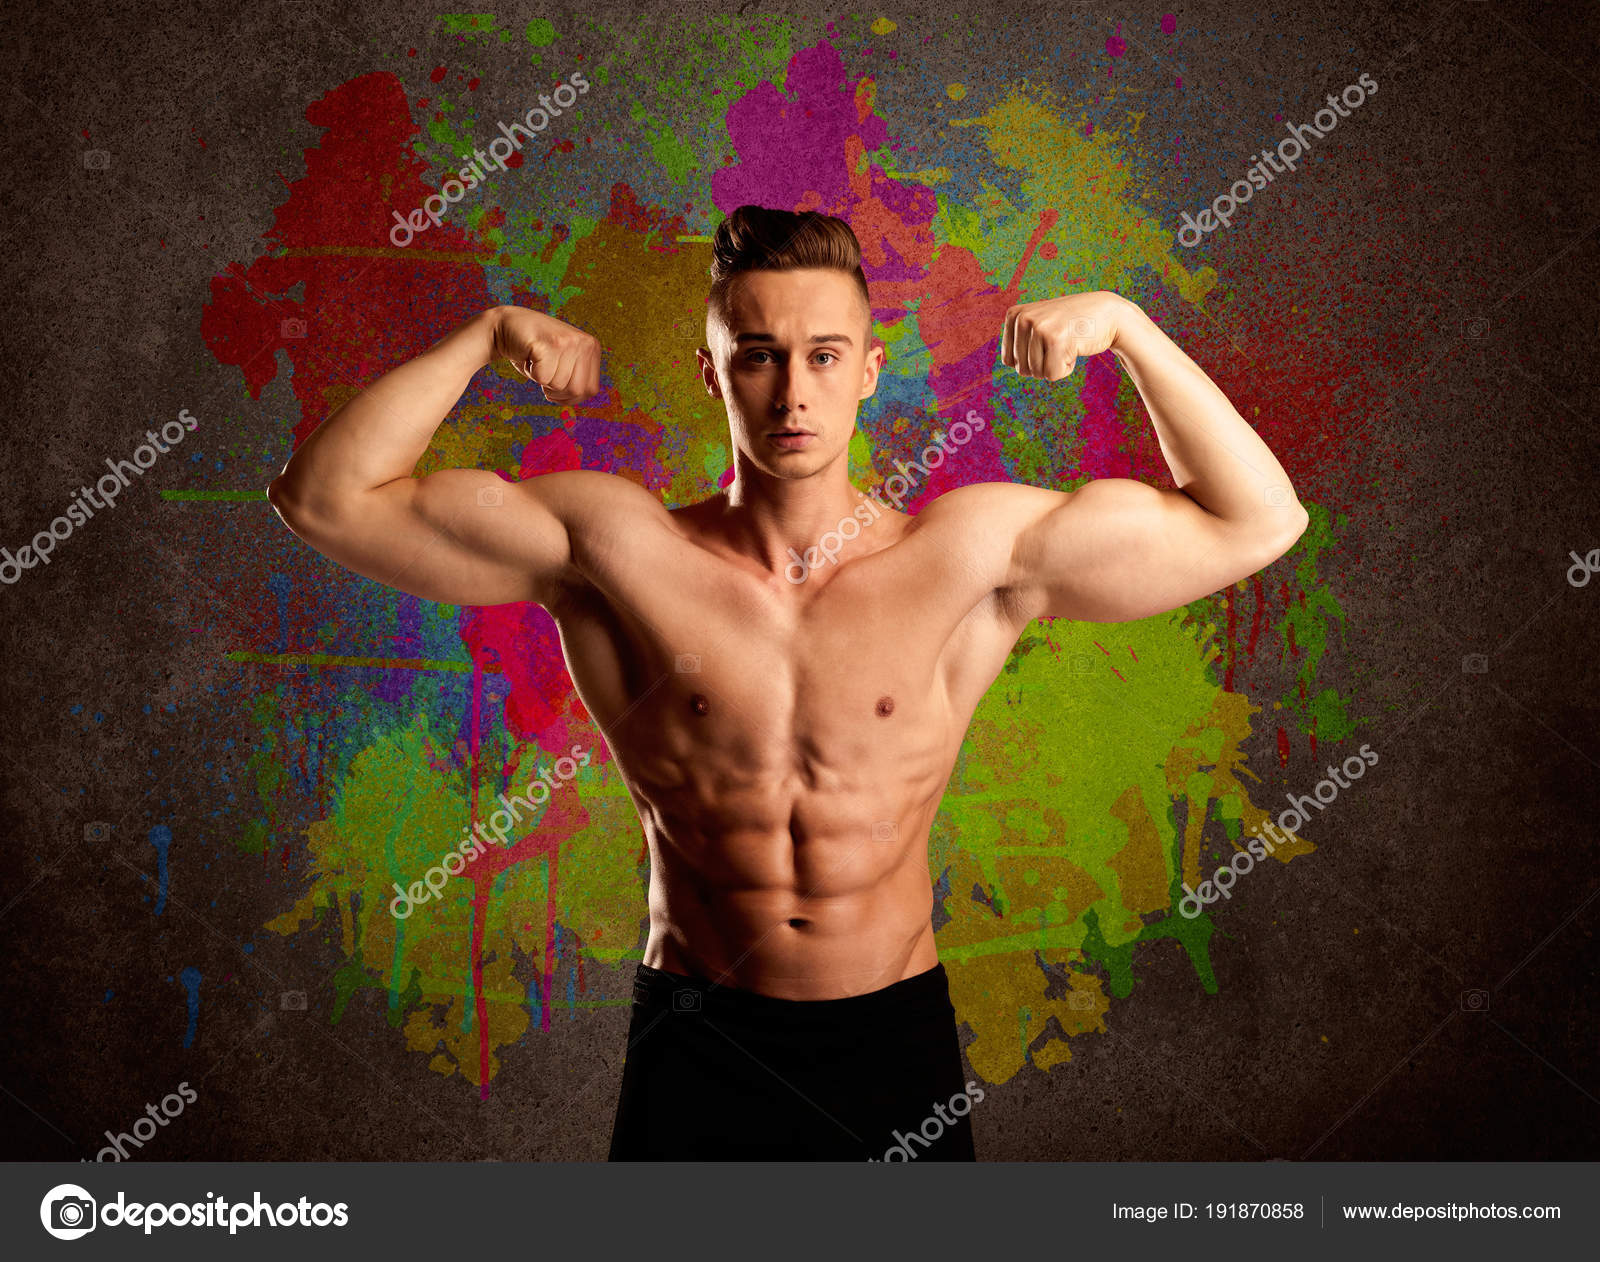 Boy muscle pictures